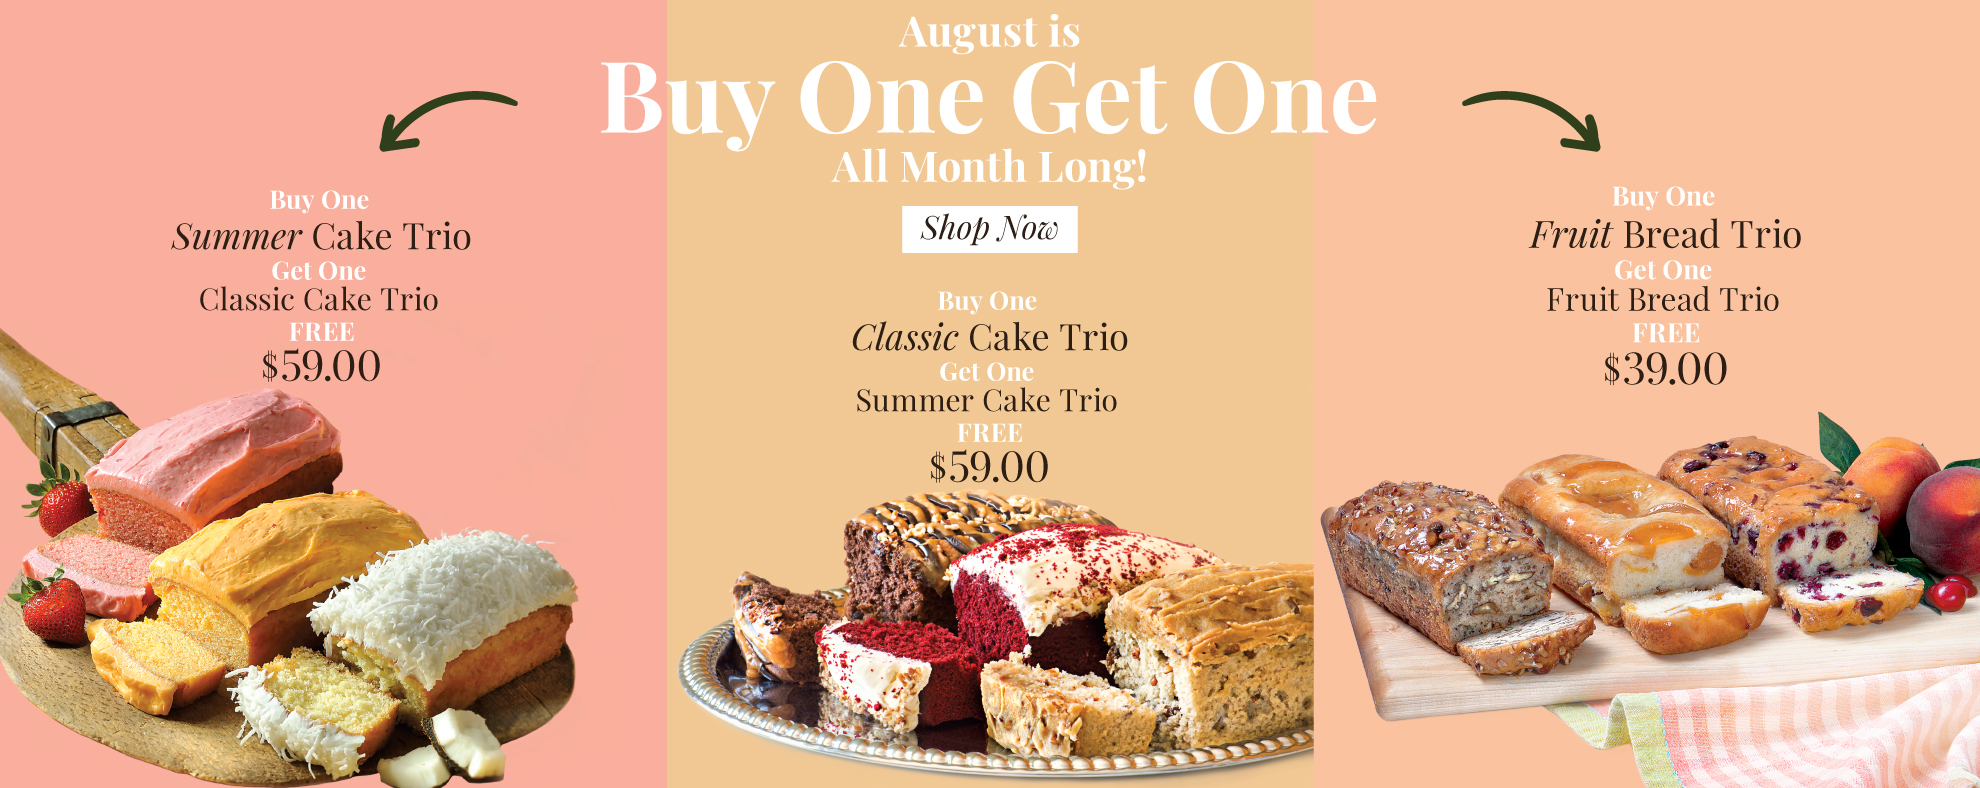 Buy One Get One On Select Items!